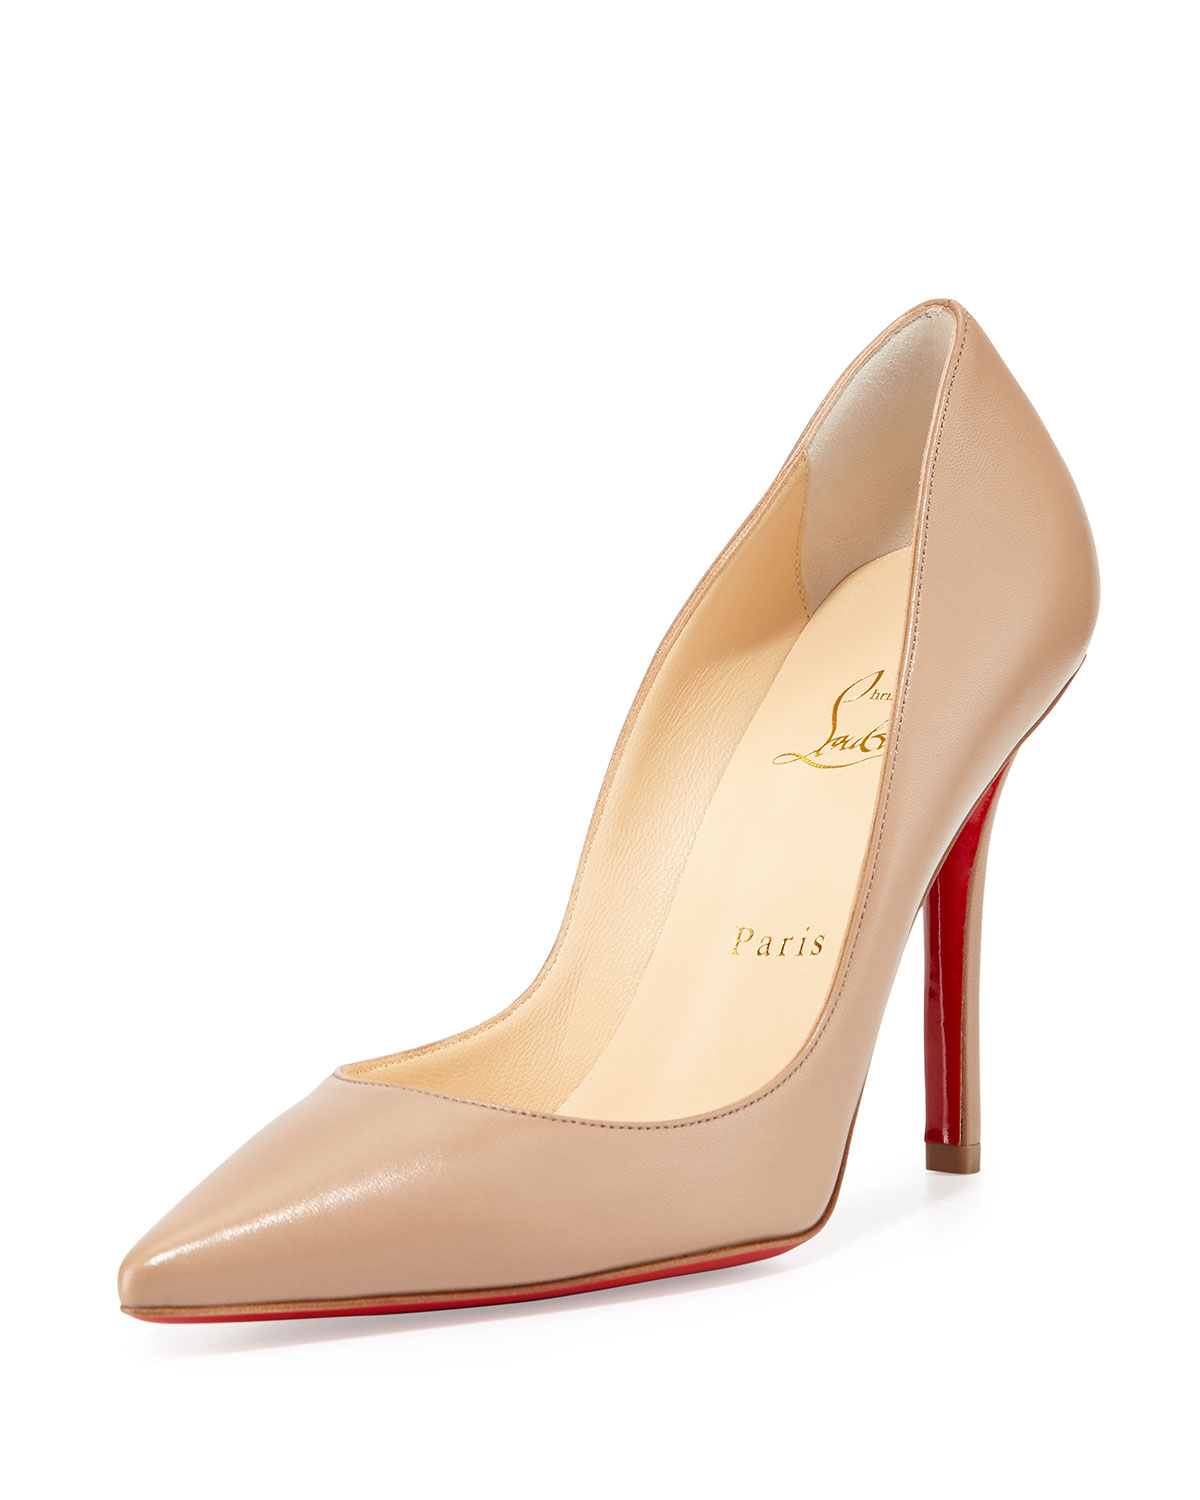 b6c8d8837e88 Christian Louboutin Apostrophy Pointed Red Sole Pump